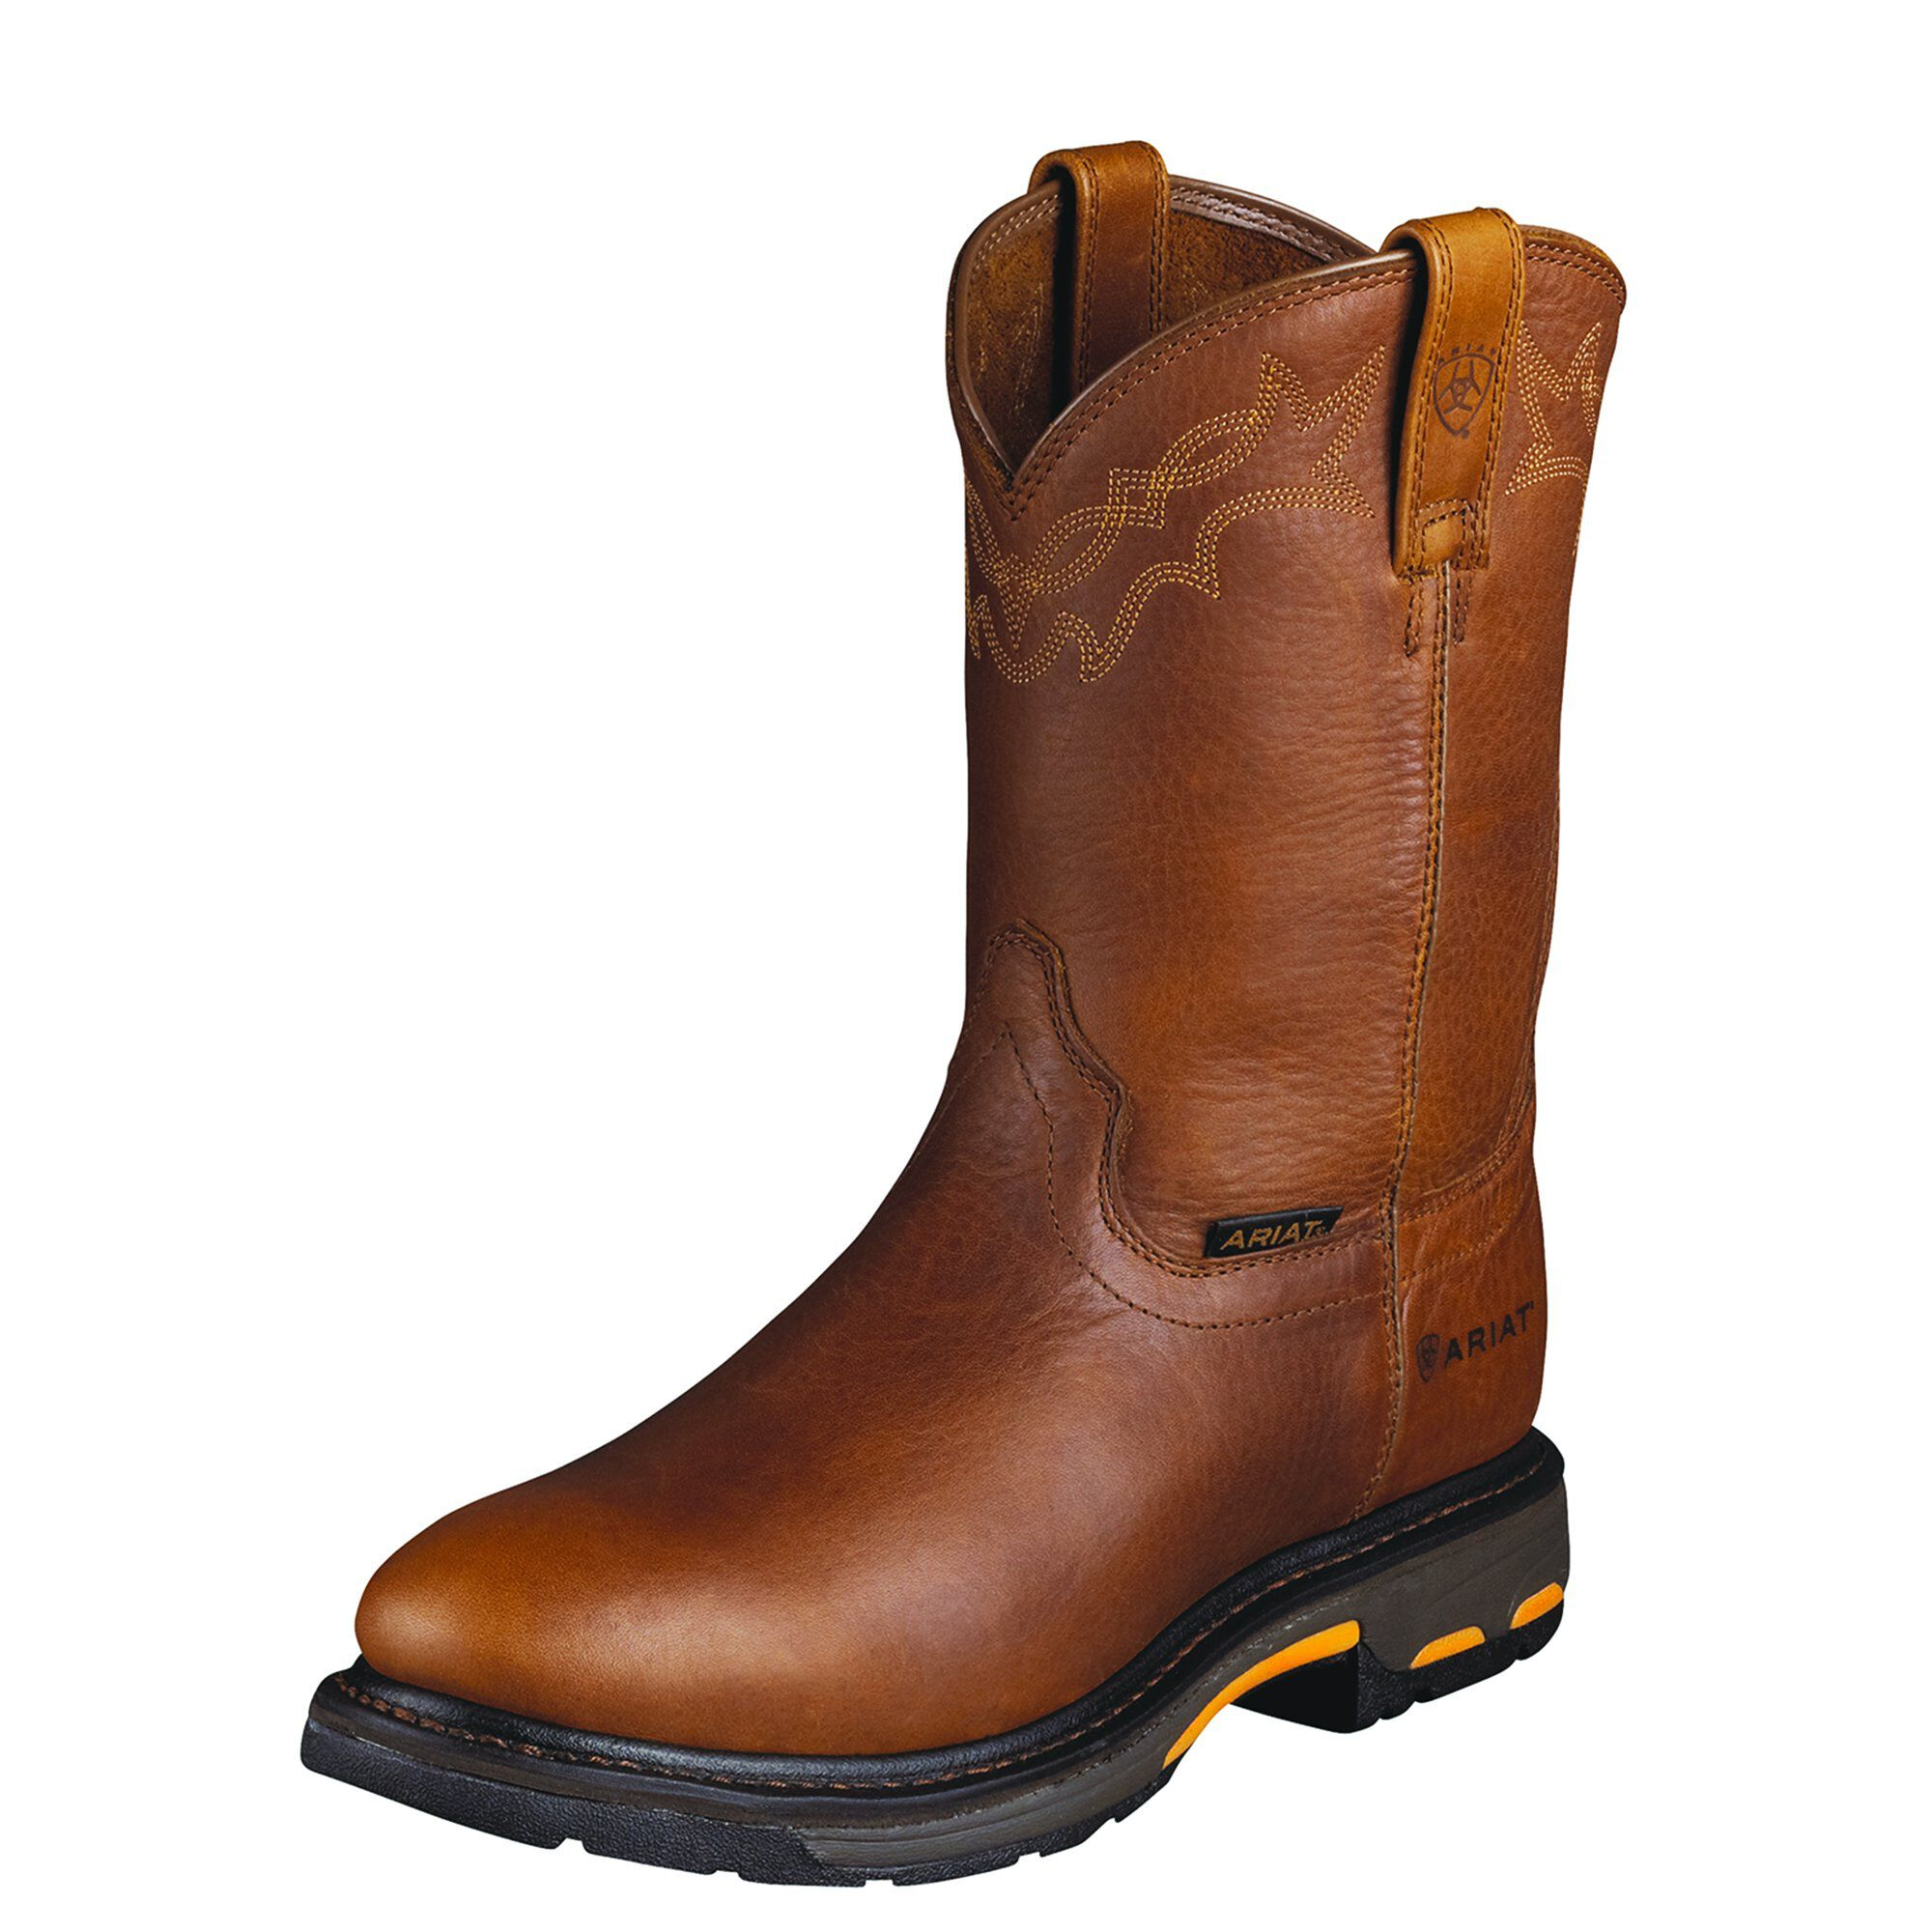 waterproof outlet walking cole black comforter boot boots comfortable for b haan champlain in